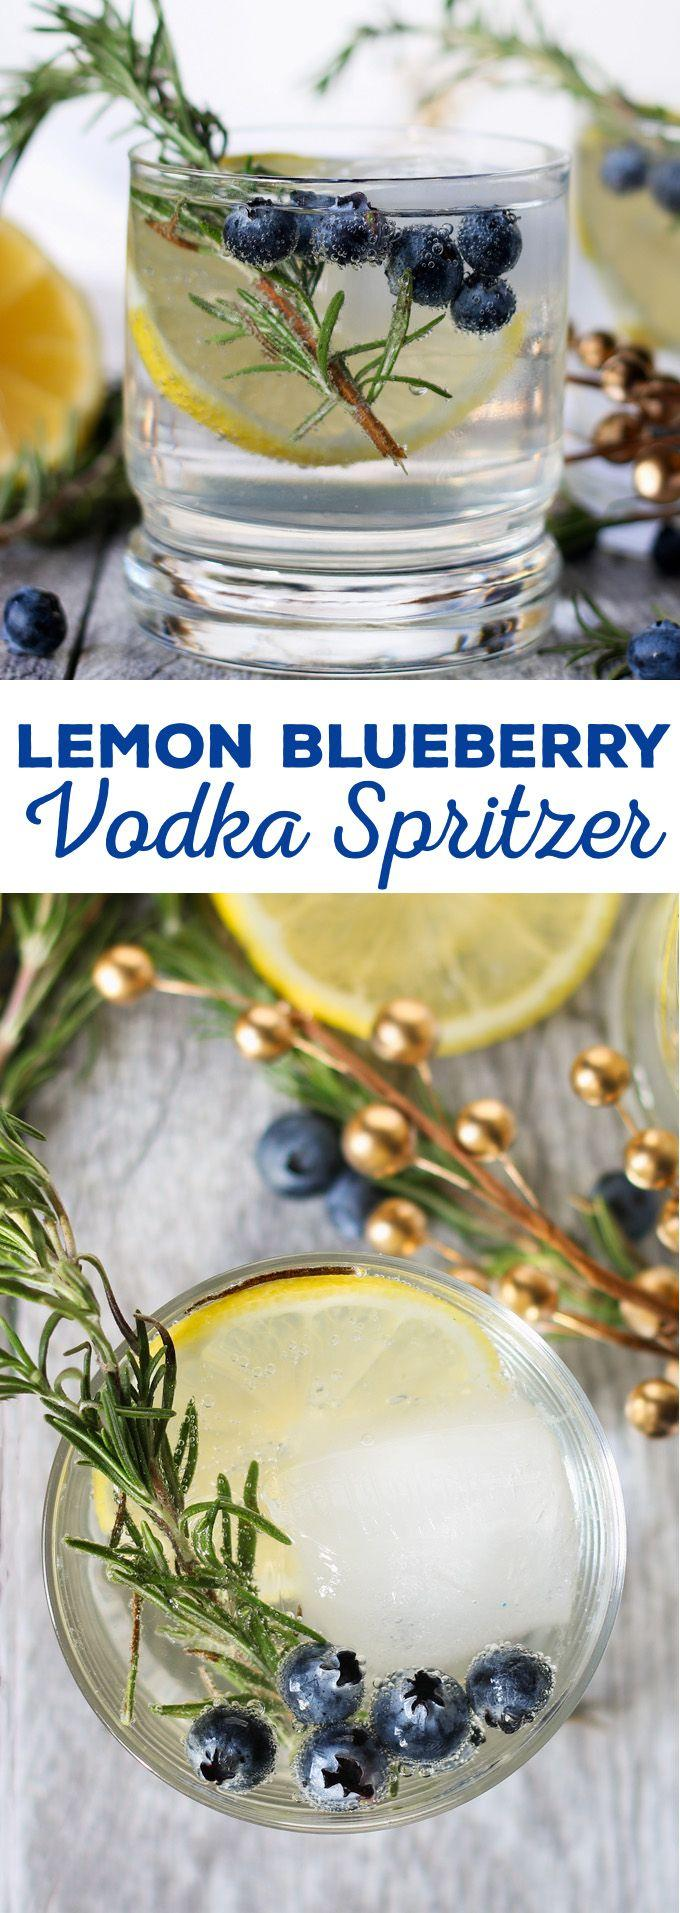 Wedding - Lemon Blueberry Vodka Spritzer